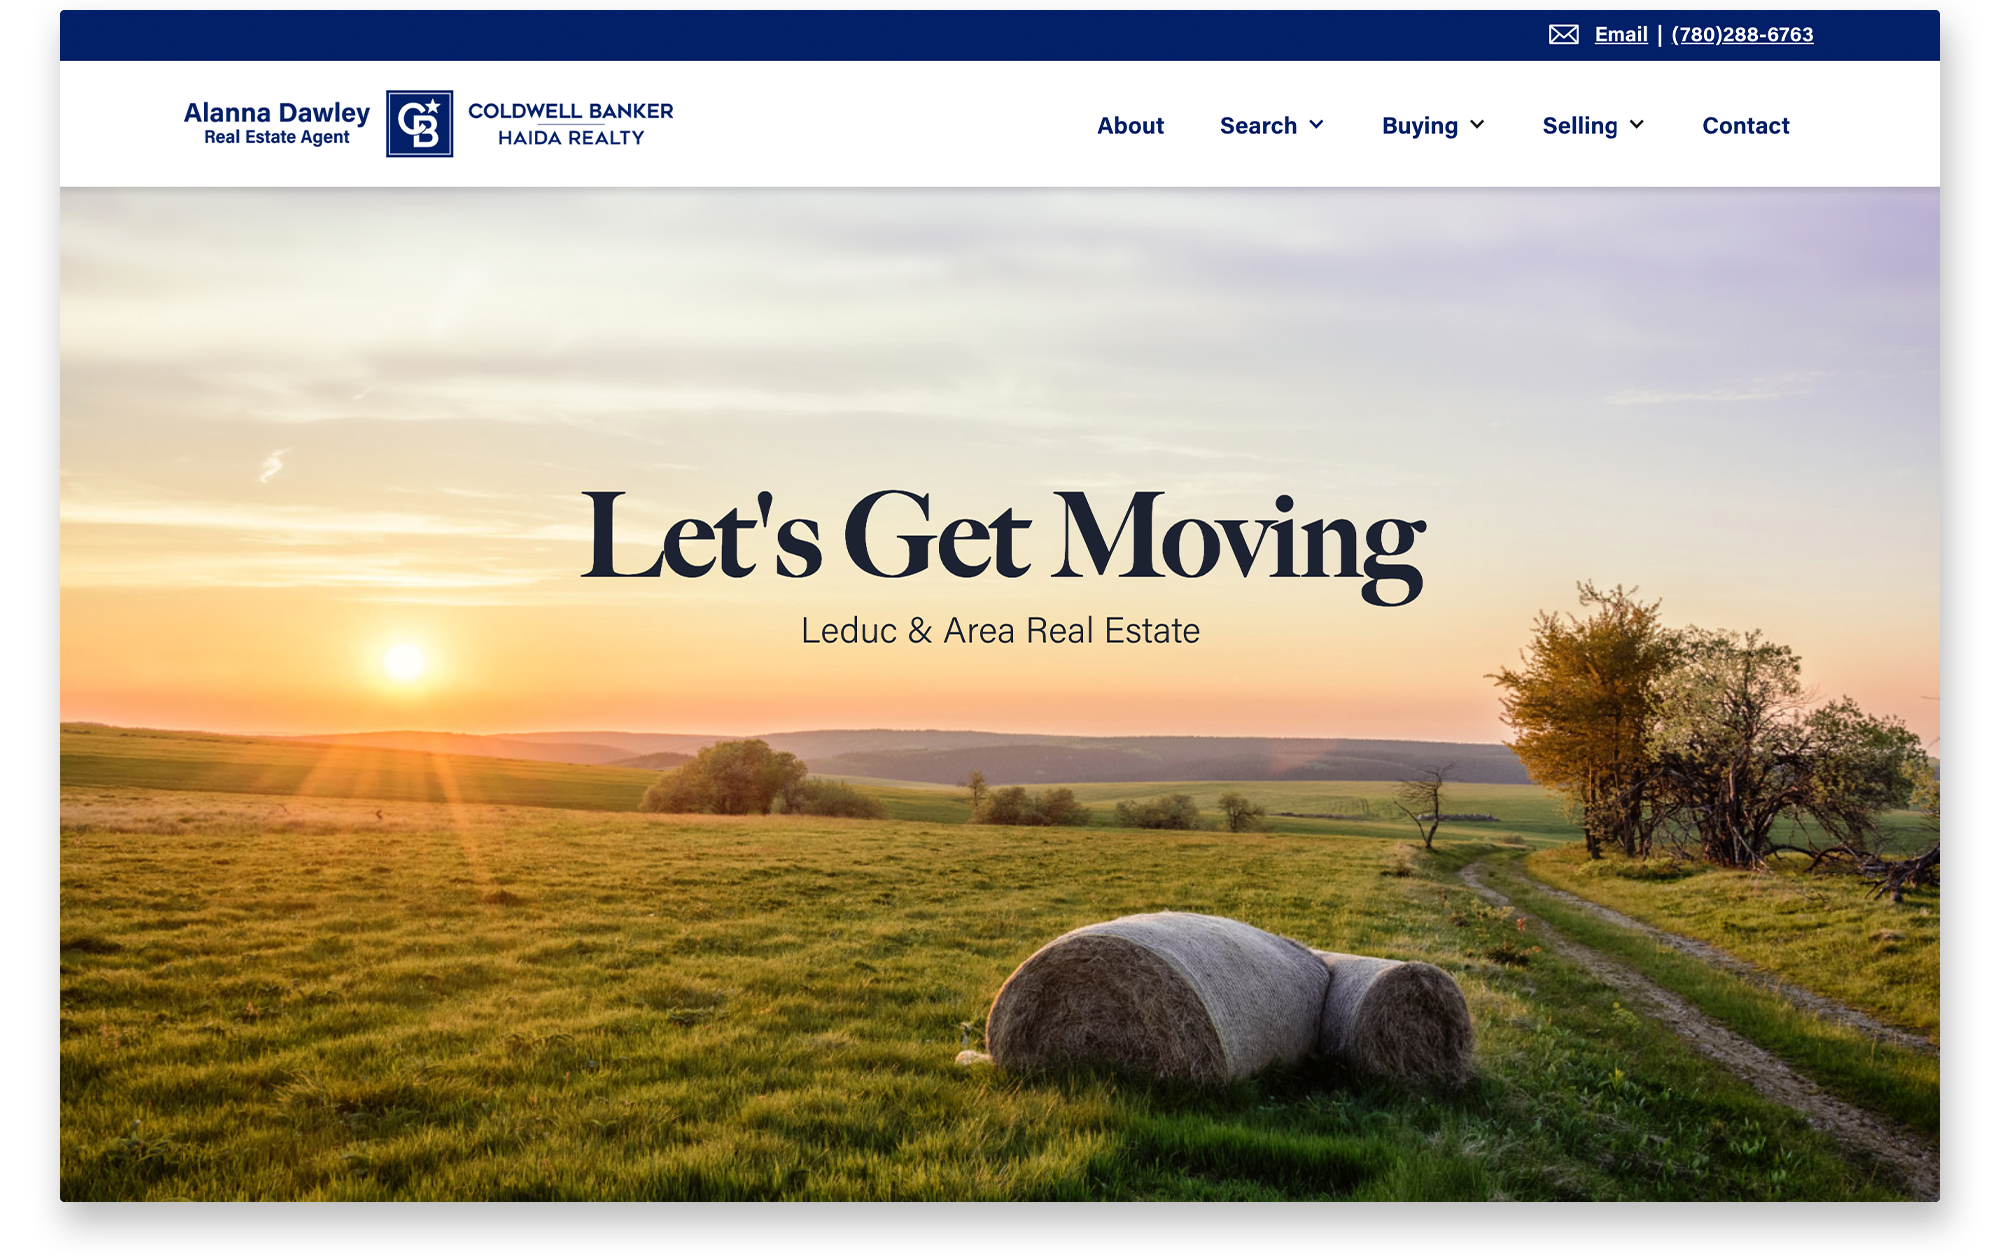 Landing page for Alanna Dawley's real estate website.